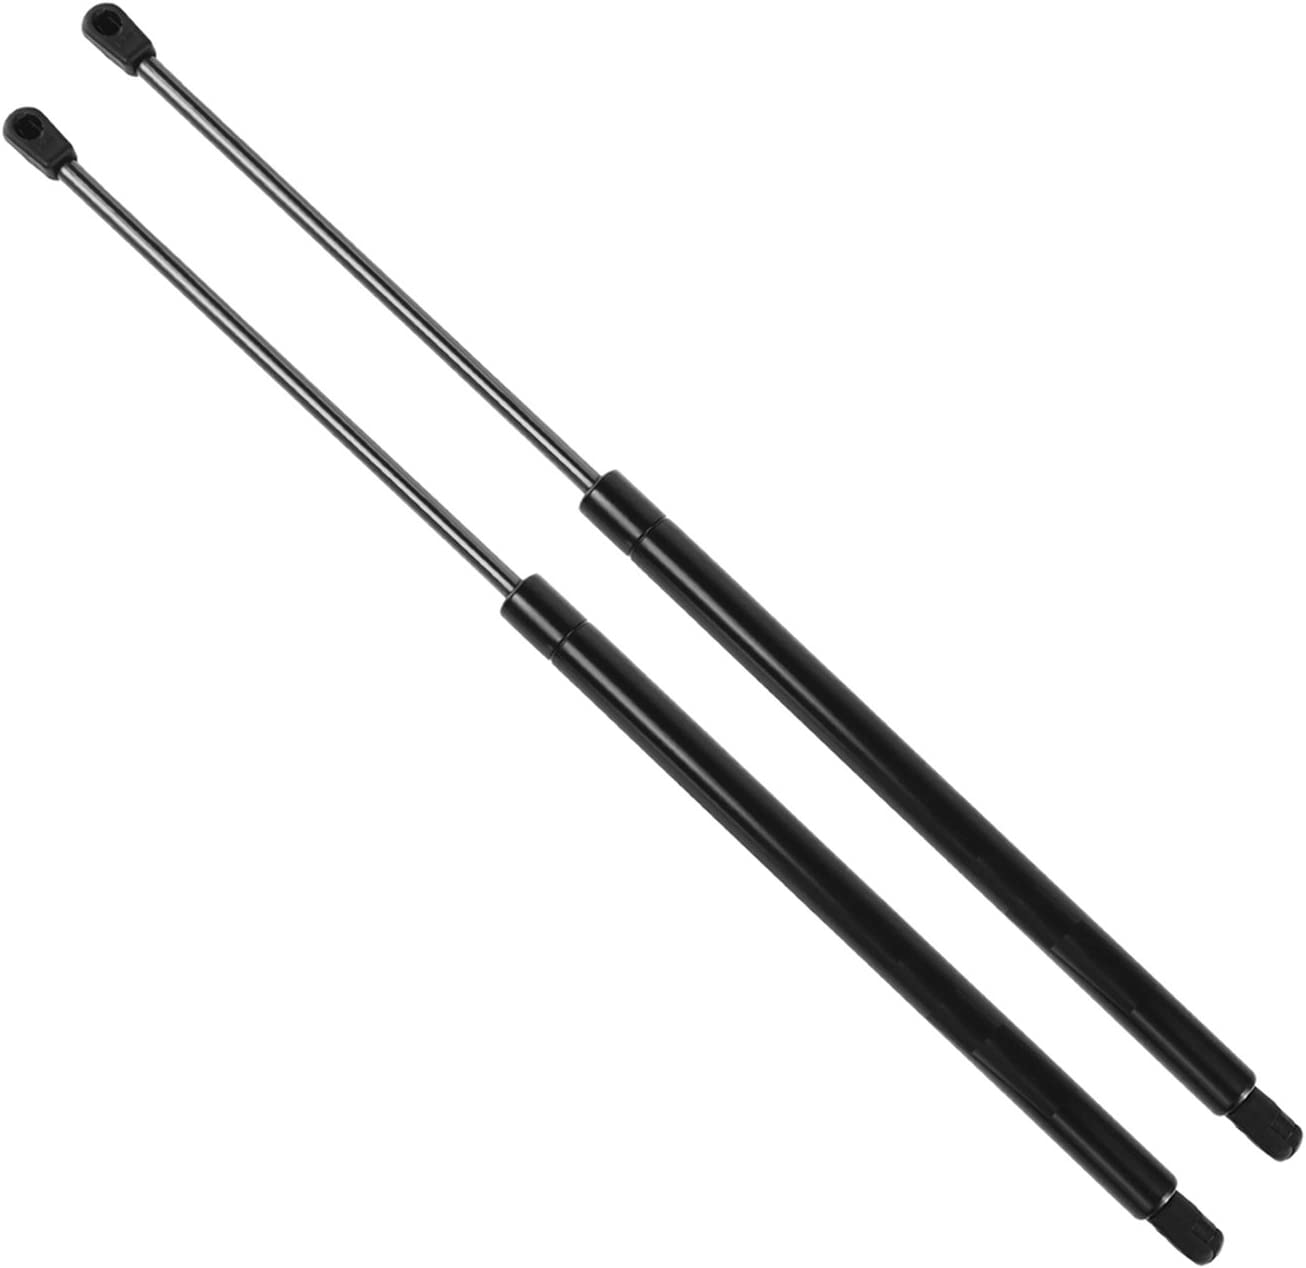 Rear Liftgate Hatch Tailgate Lift Supports Gas Springs Shocks Struts for Mercury Mountaineer 2001-2007,Ford Explorer 2002-2005 4584 SG204043,Pack of 2